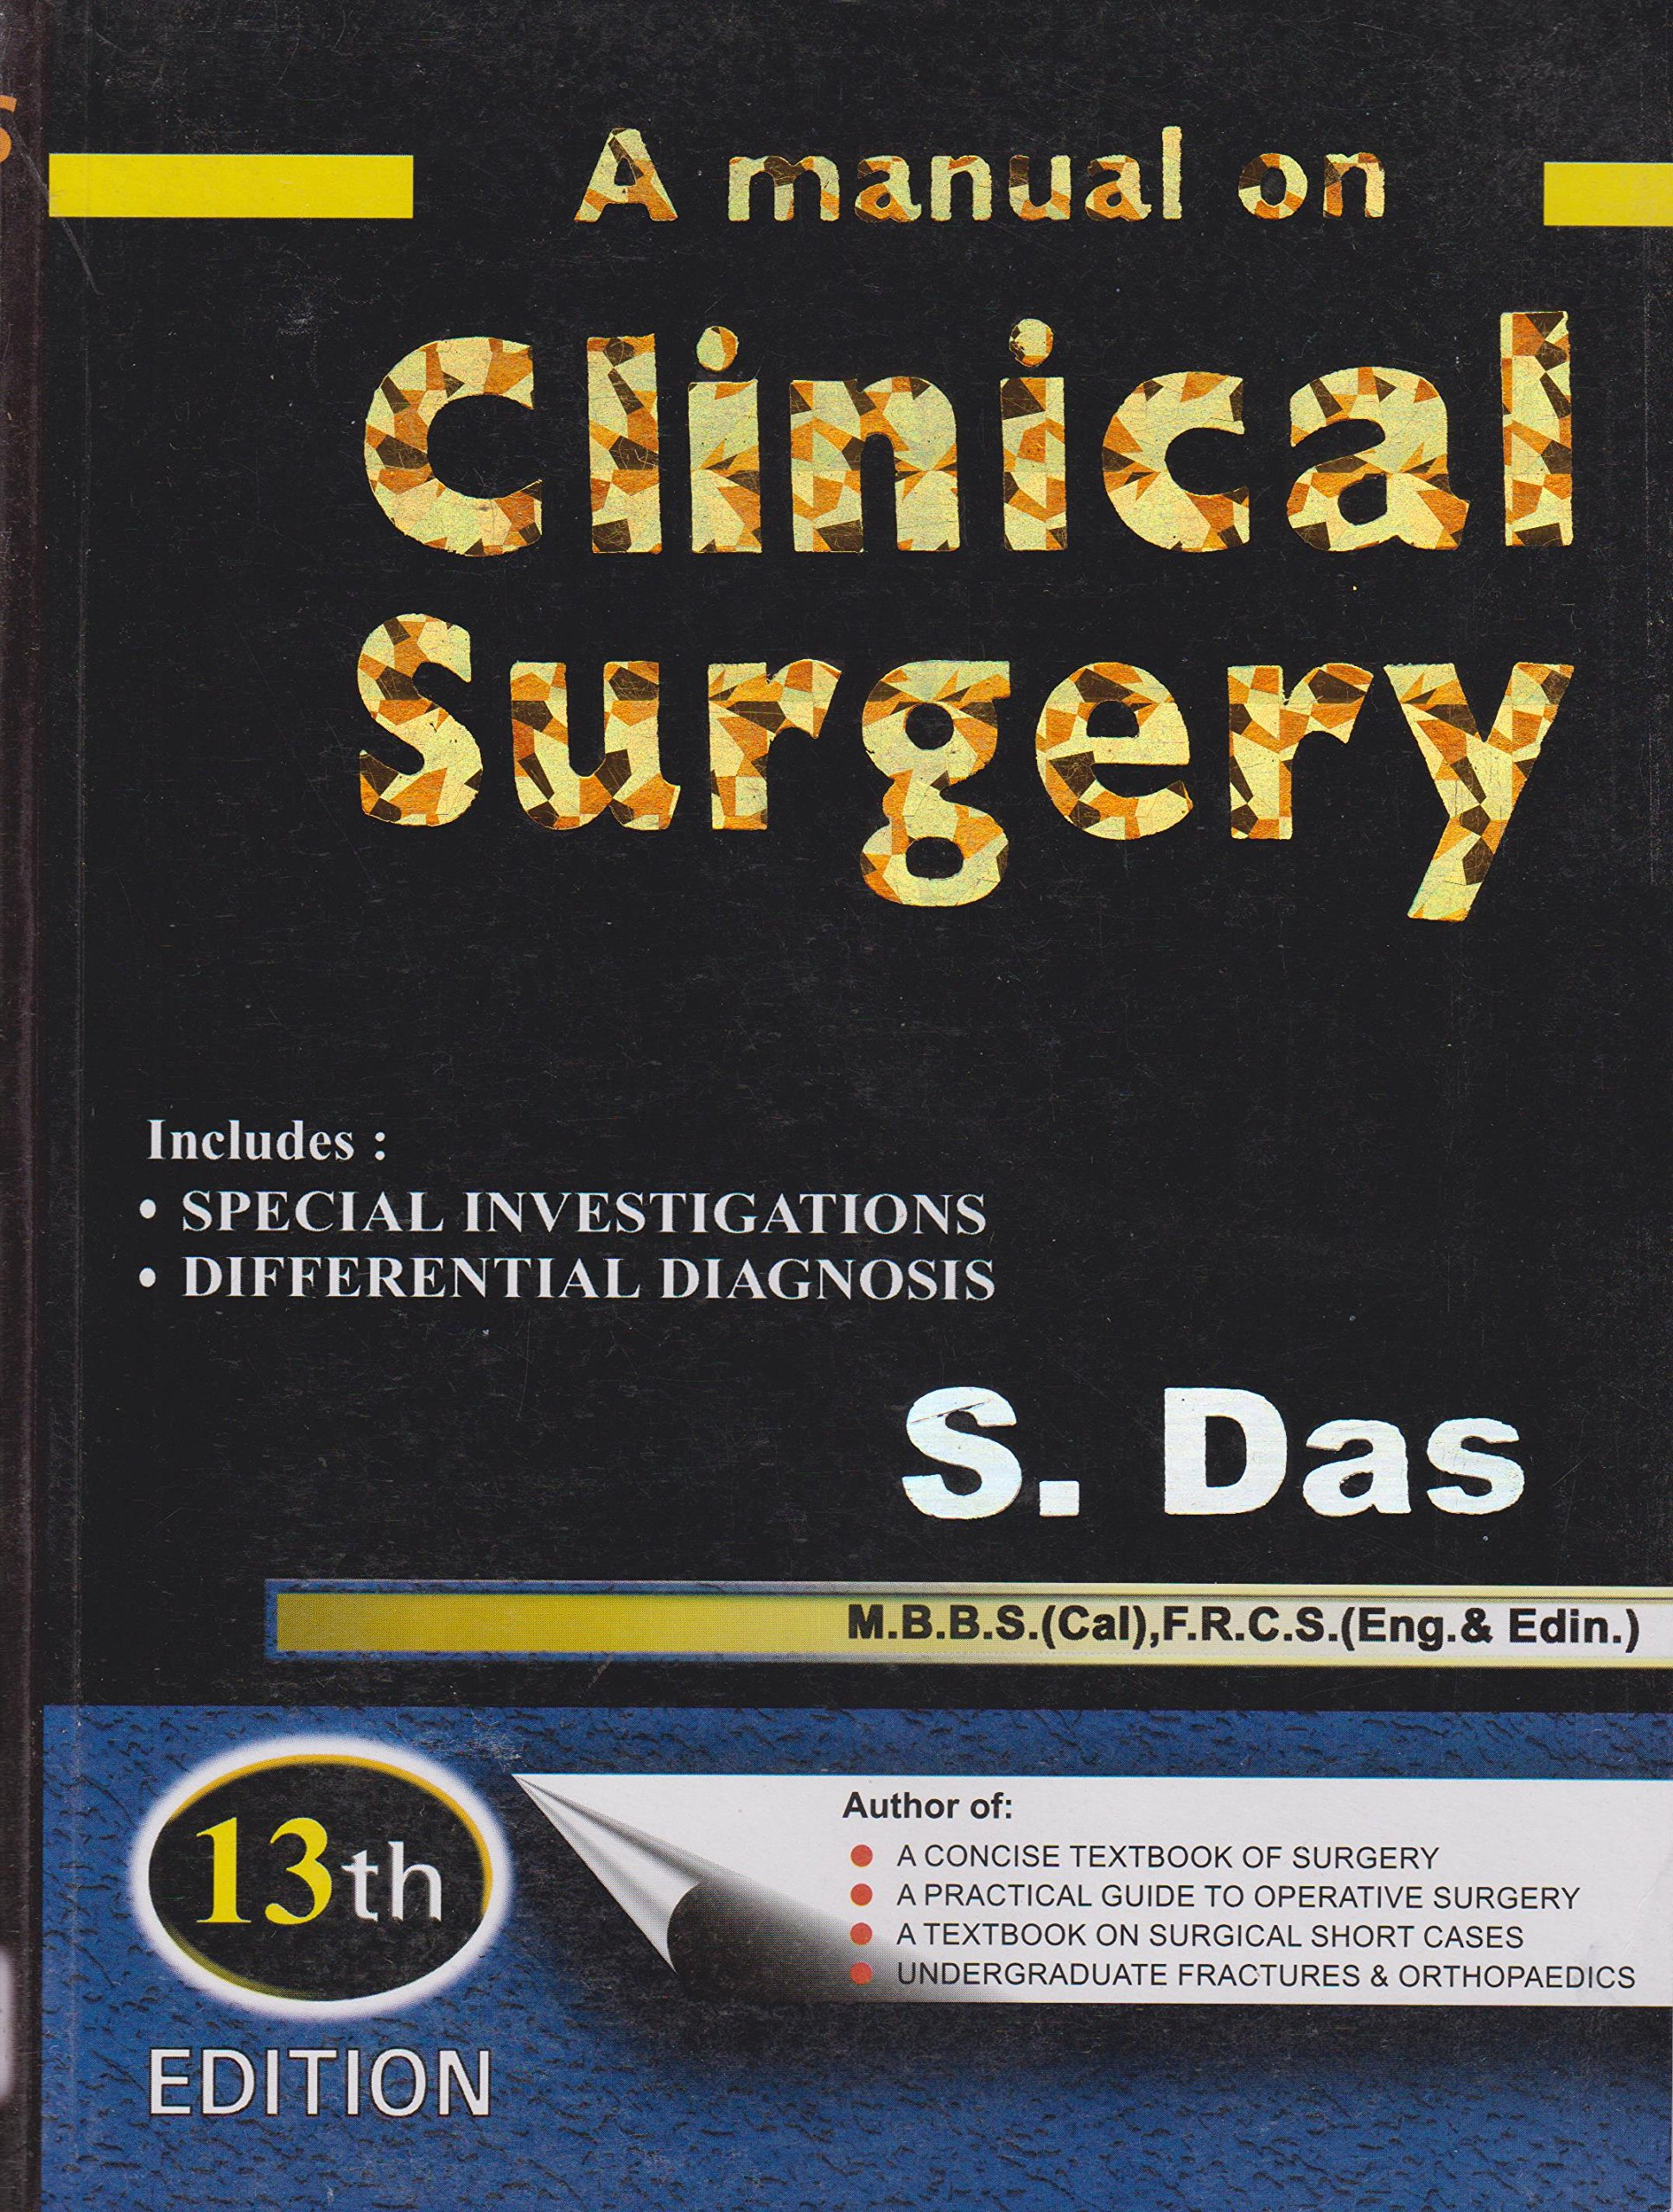 Amazon.in: Buy A Manual On Clinical Surgery 13ed Book Online at Low Prices  in India | A Manual On Clinical Surgery 13ed Reviews & Ratings